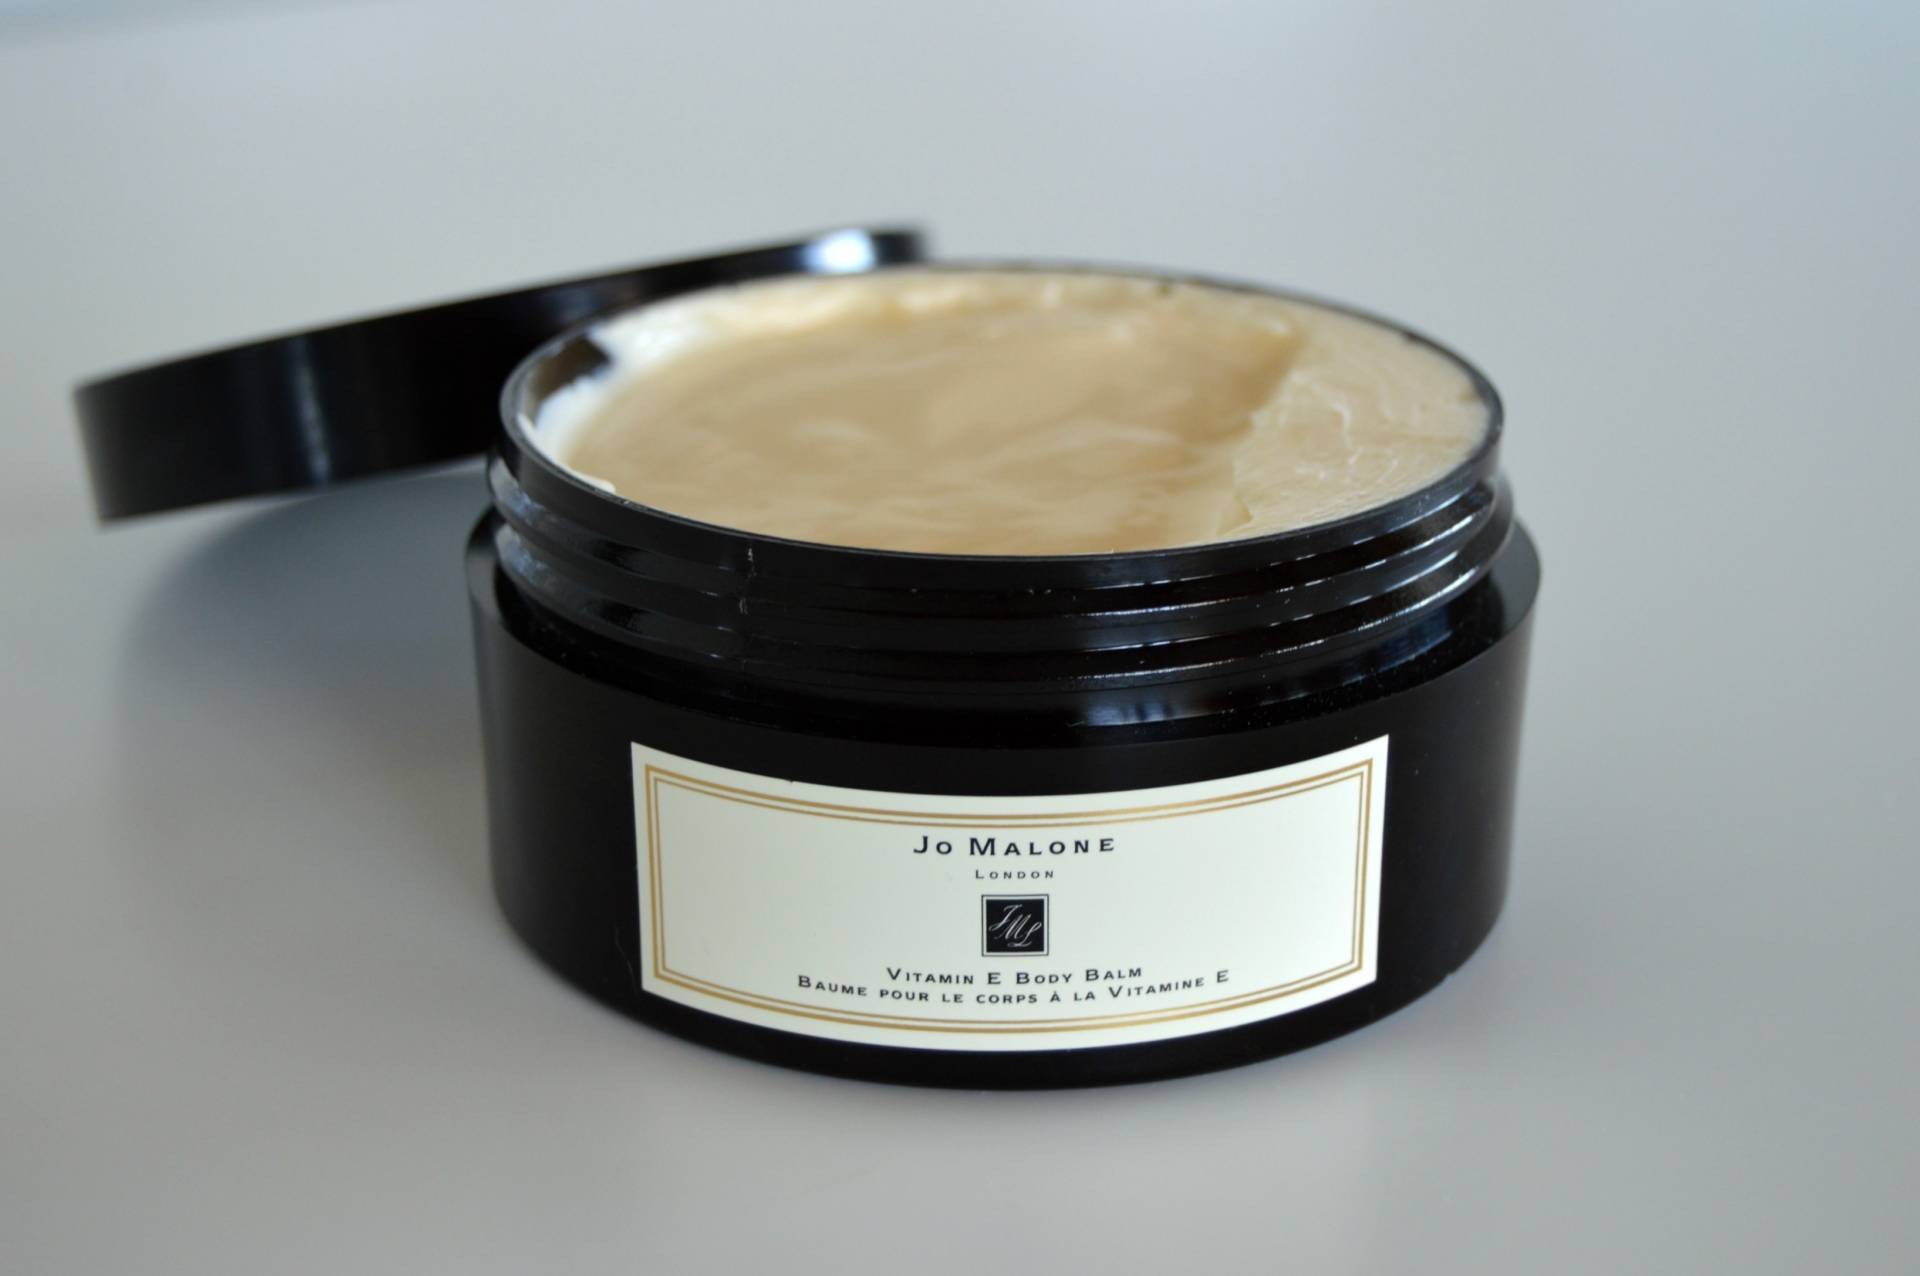 JO MALONE LONDON vitamin e body balm inhautepursuit neiman marcus grooming day review